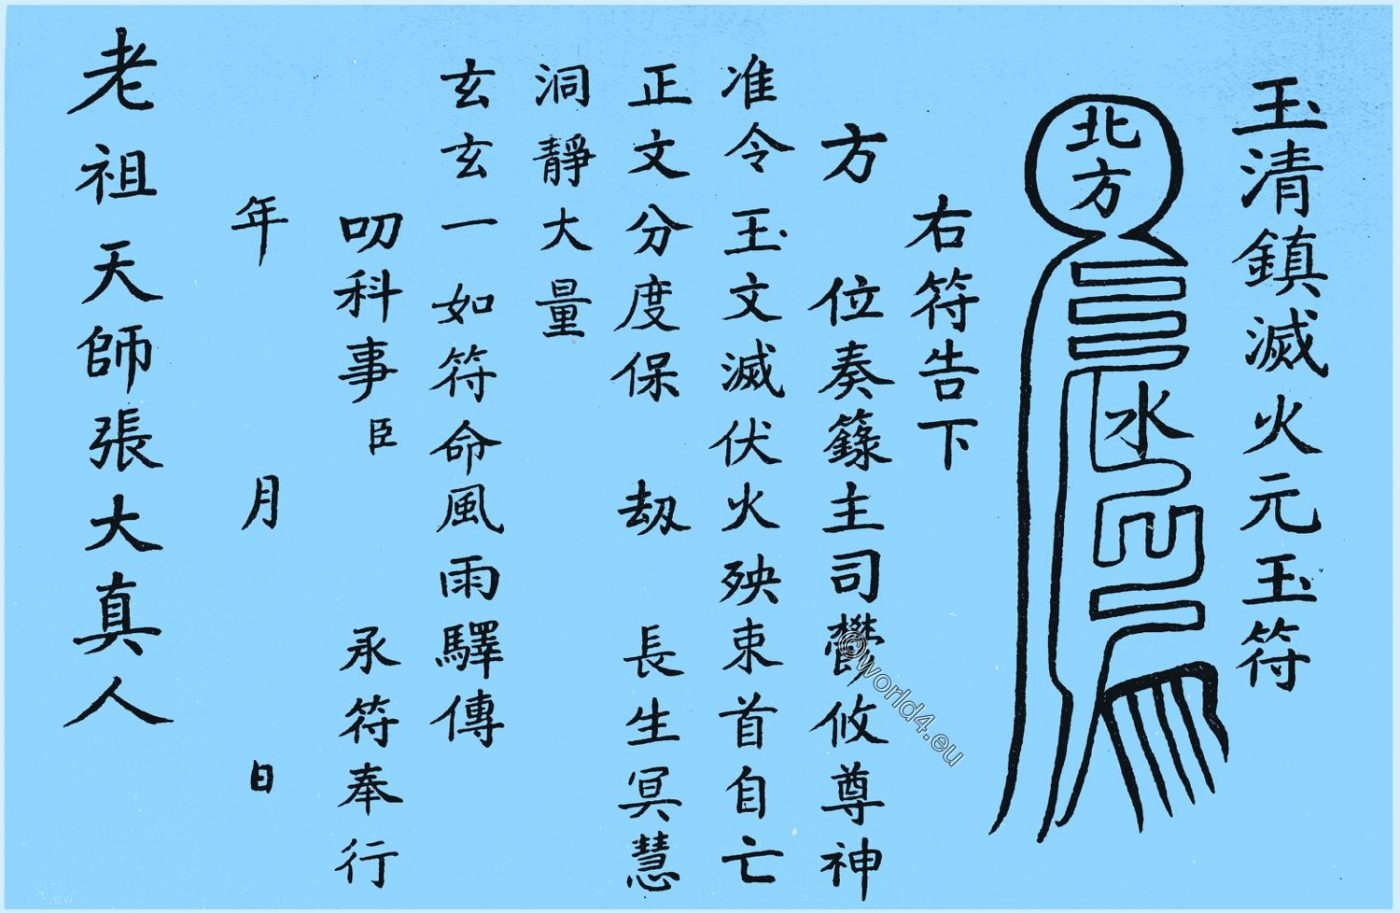 Blue, charm, Taoist, protective, formula, house fires, ancient, China, Chinese, superstitions